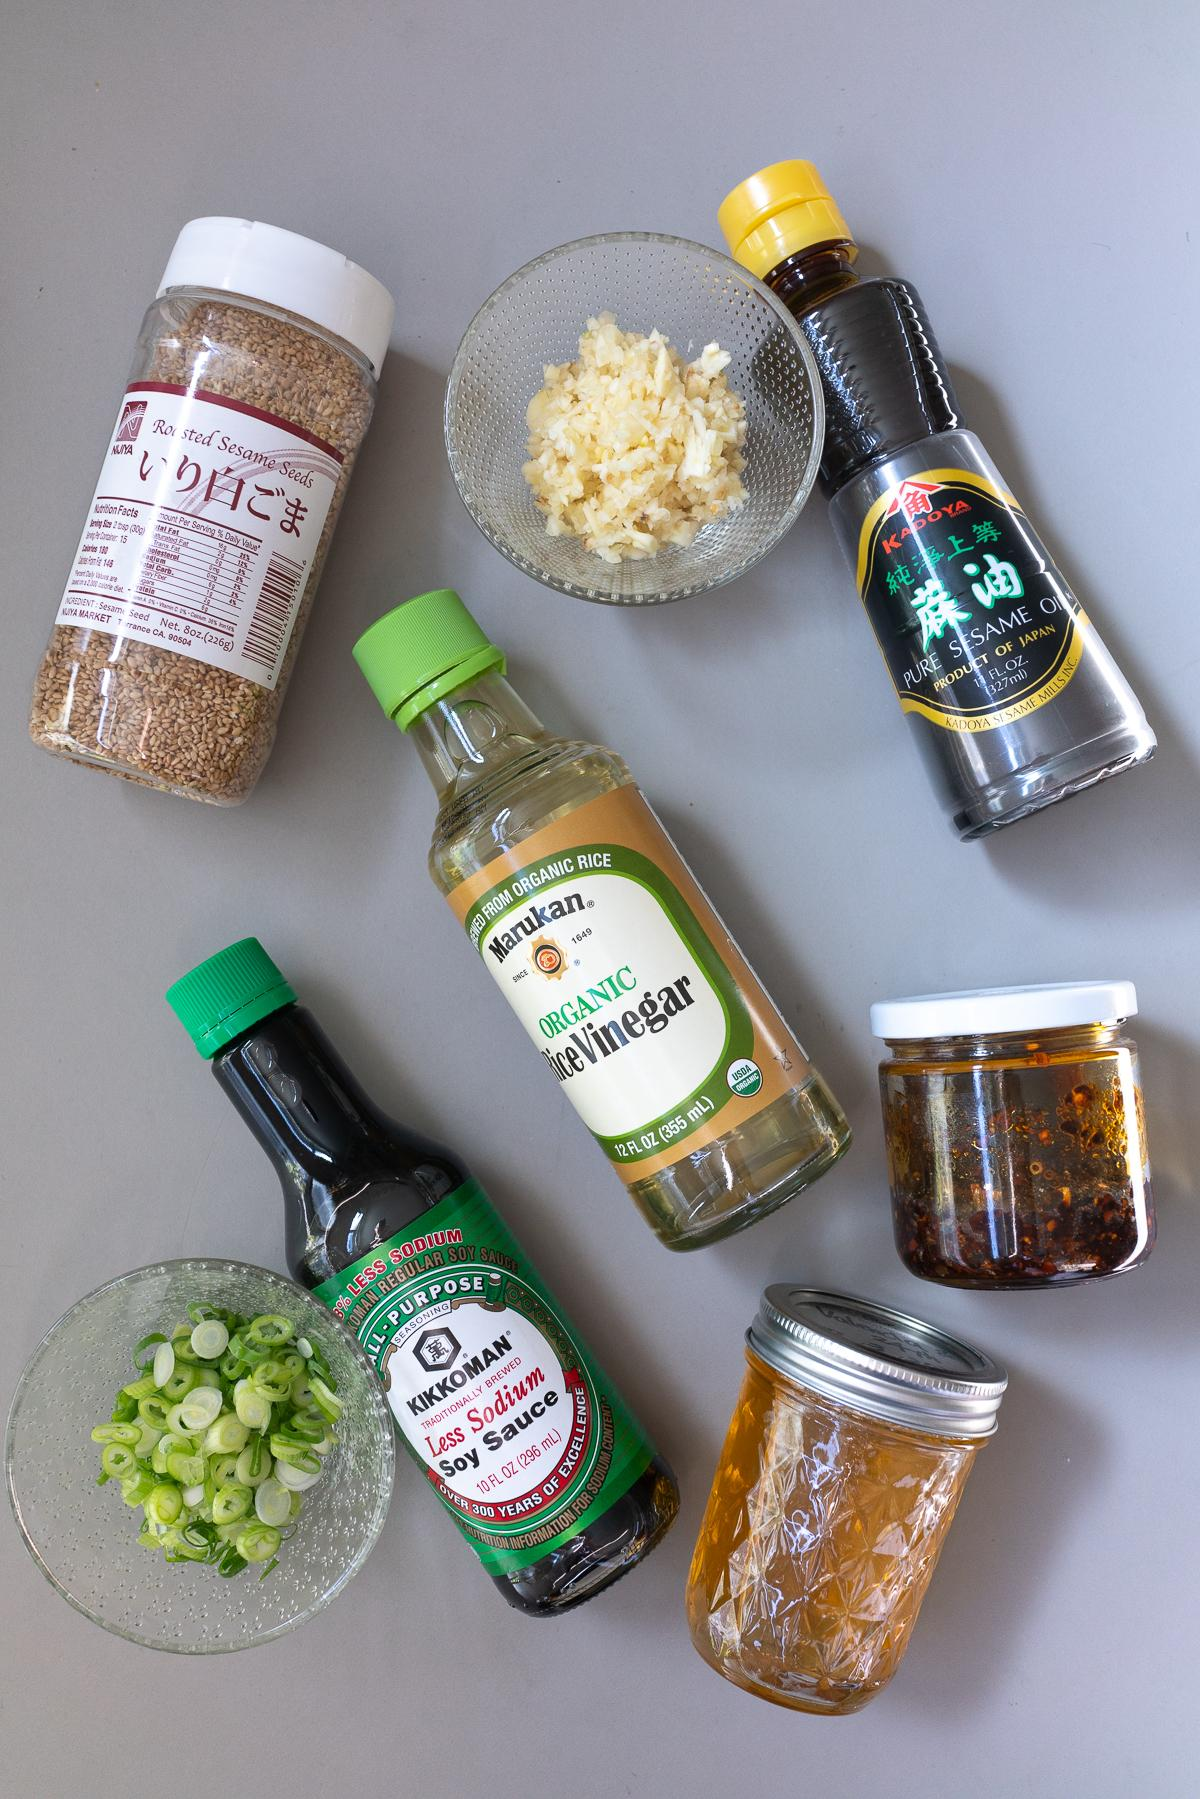 Ingredients for Dumpling Dipping Sauce (soy sauce, rice vinegar, sesame oil, chili oil, honey, sesame seeds, garlic, and green onions)